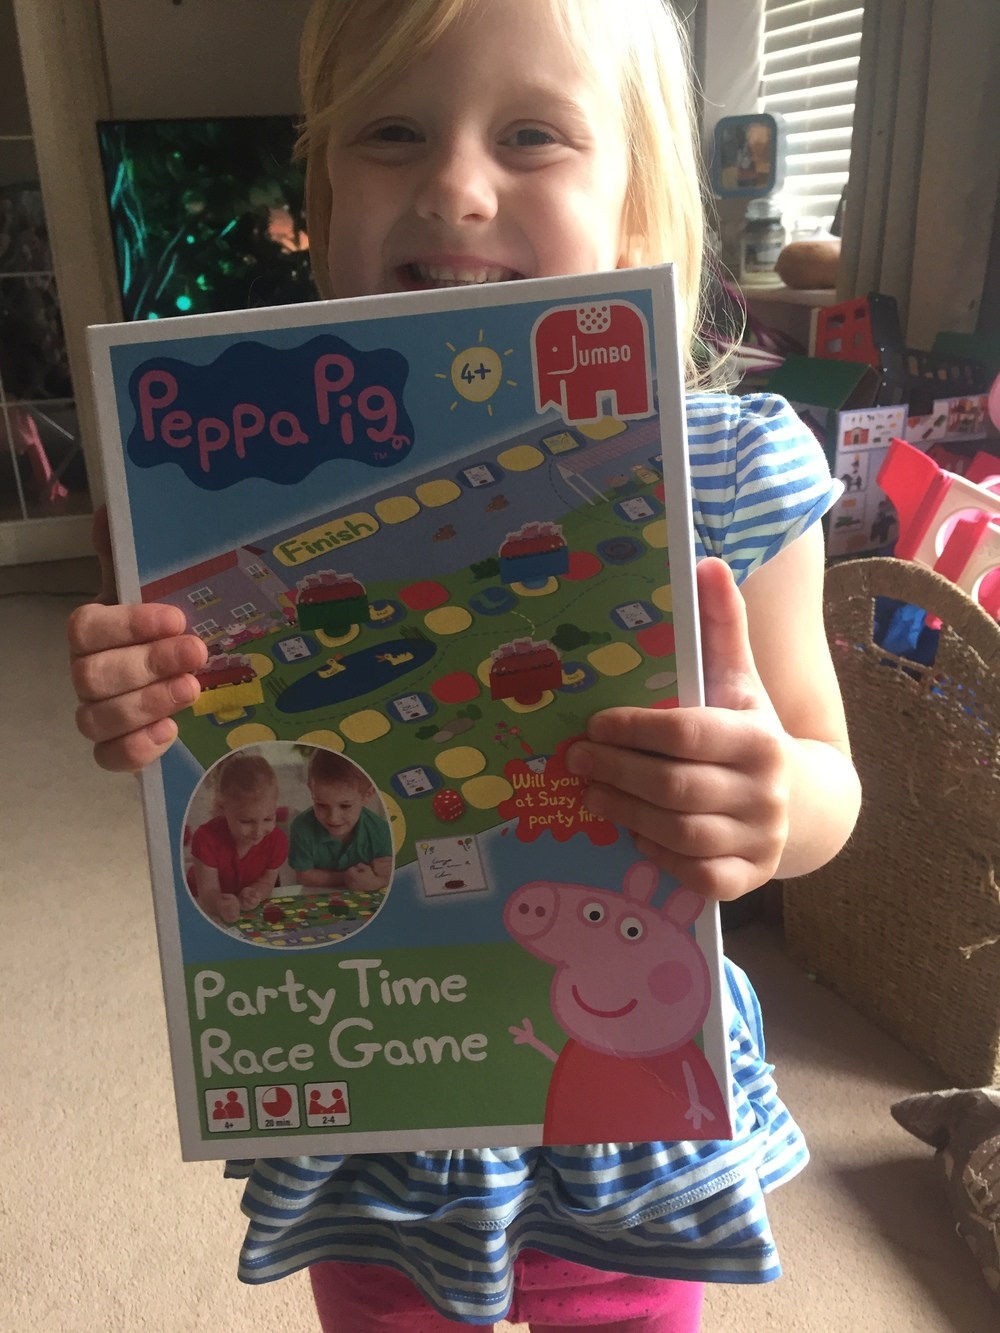 Summer loves Peppa Pig (what pre-schooler doesn't?!) so when we were invited to become part of the Offical Peppa Pig blogger team, we were super excited.  We were sent a huge box of Peppa Pig products to review, perfect for some school holiday fun. We've been trying them out the past couple of weeks playing and testing out all our new Peppa Pig products.